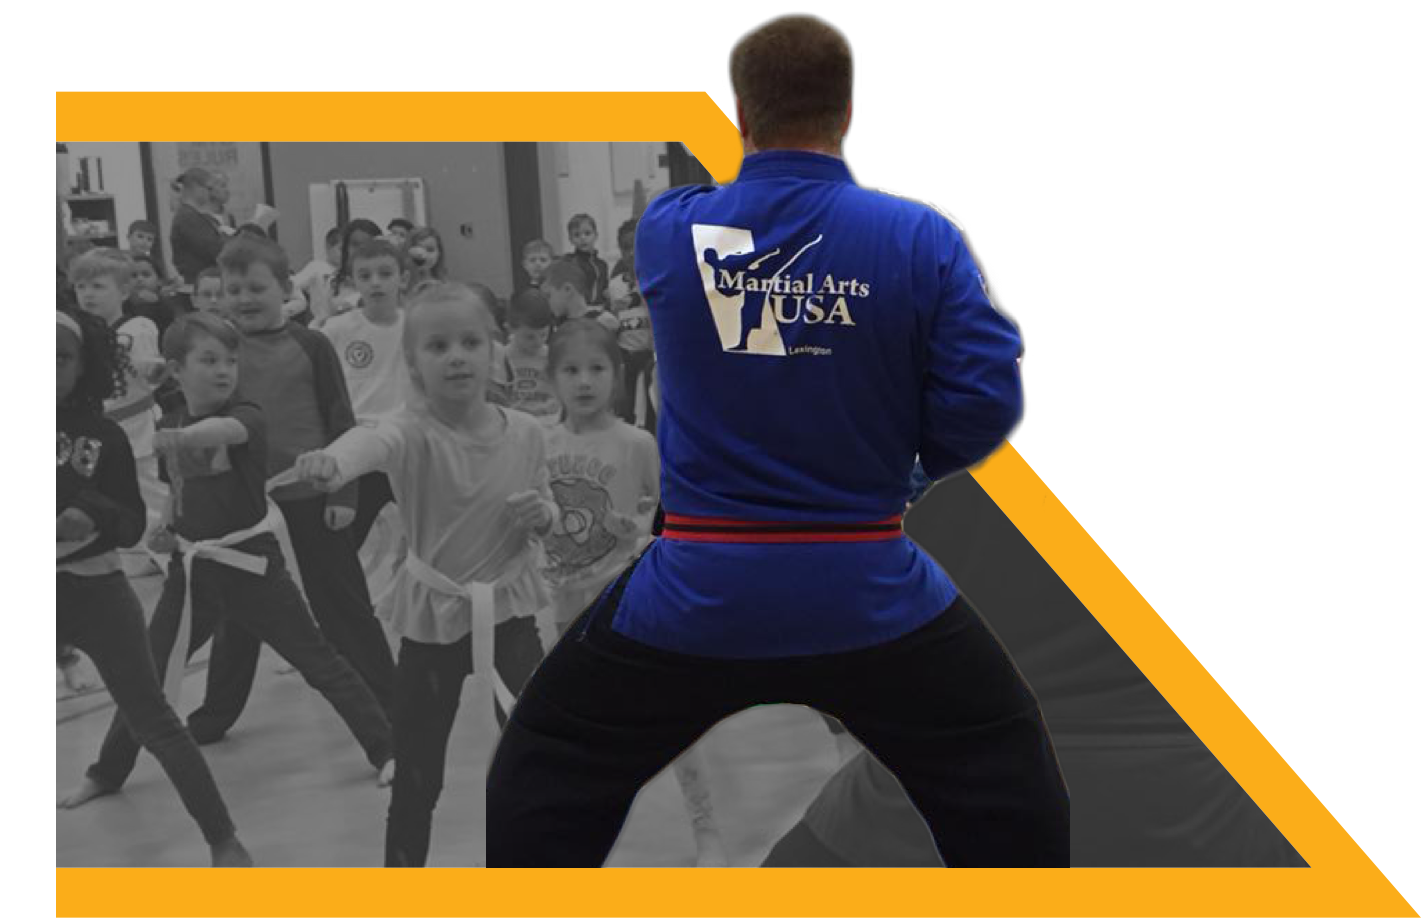 Students learning Martial Arts at school.